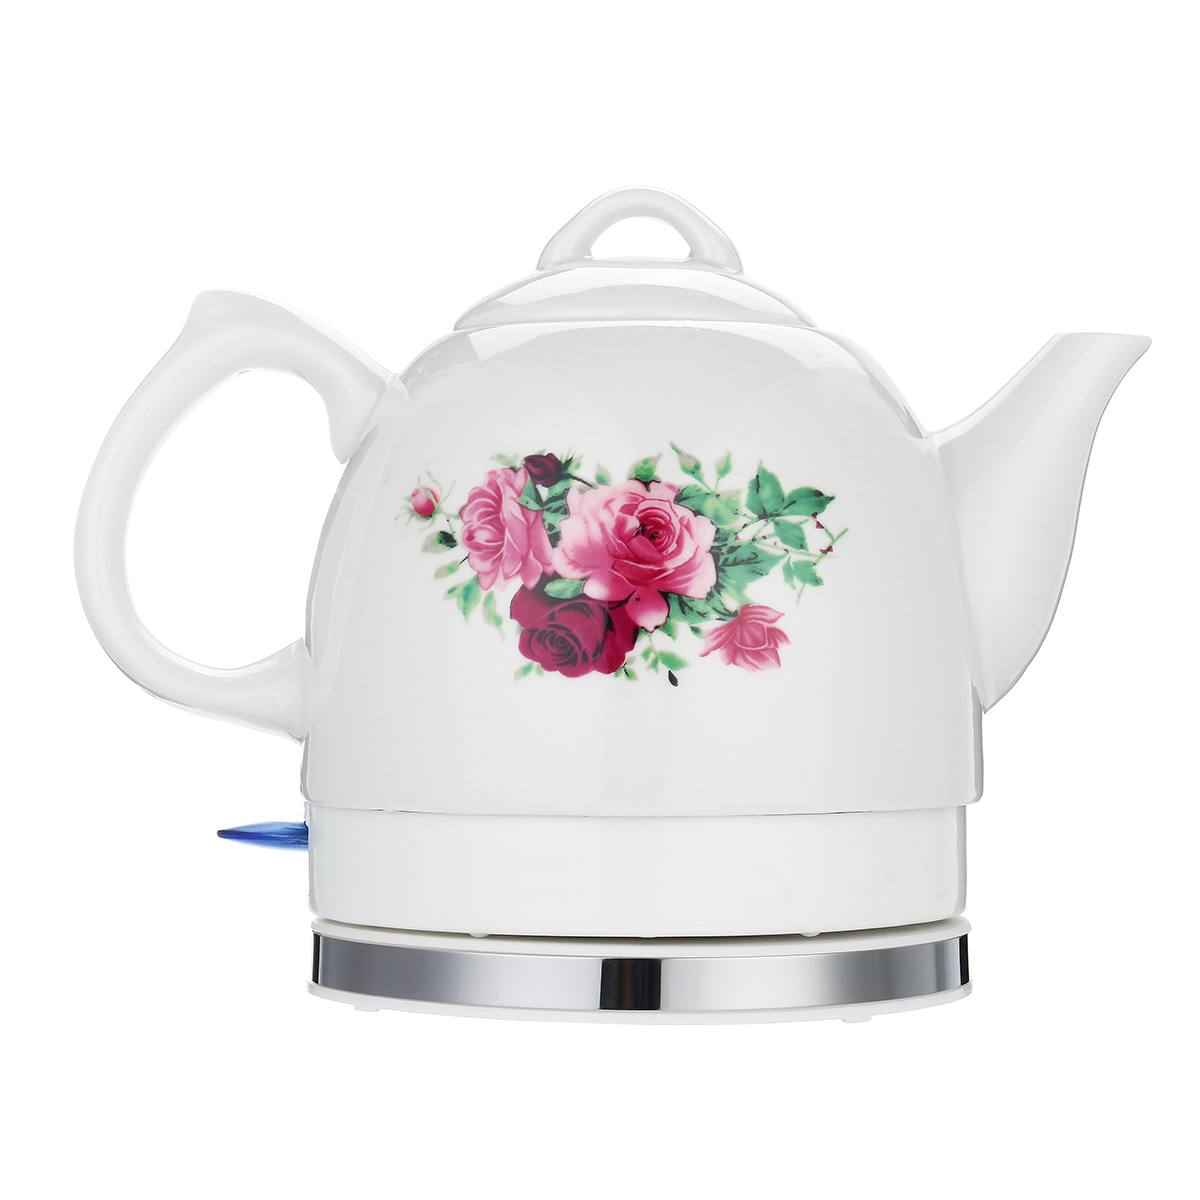 1 L Ceramic Electric Water Kettle High Power Heated Kettle With Safety Automatic Power-off Function Quick Boiling Hot Tea Pot